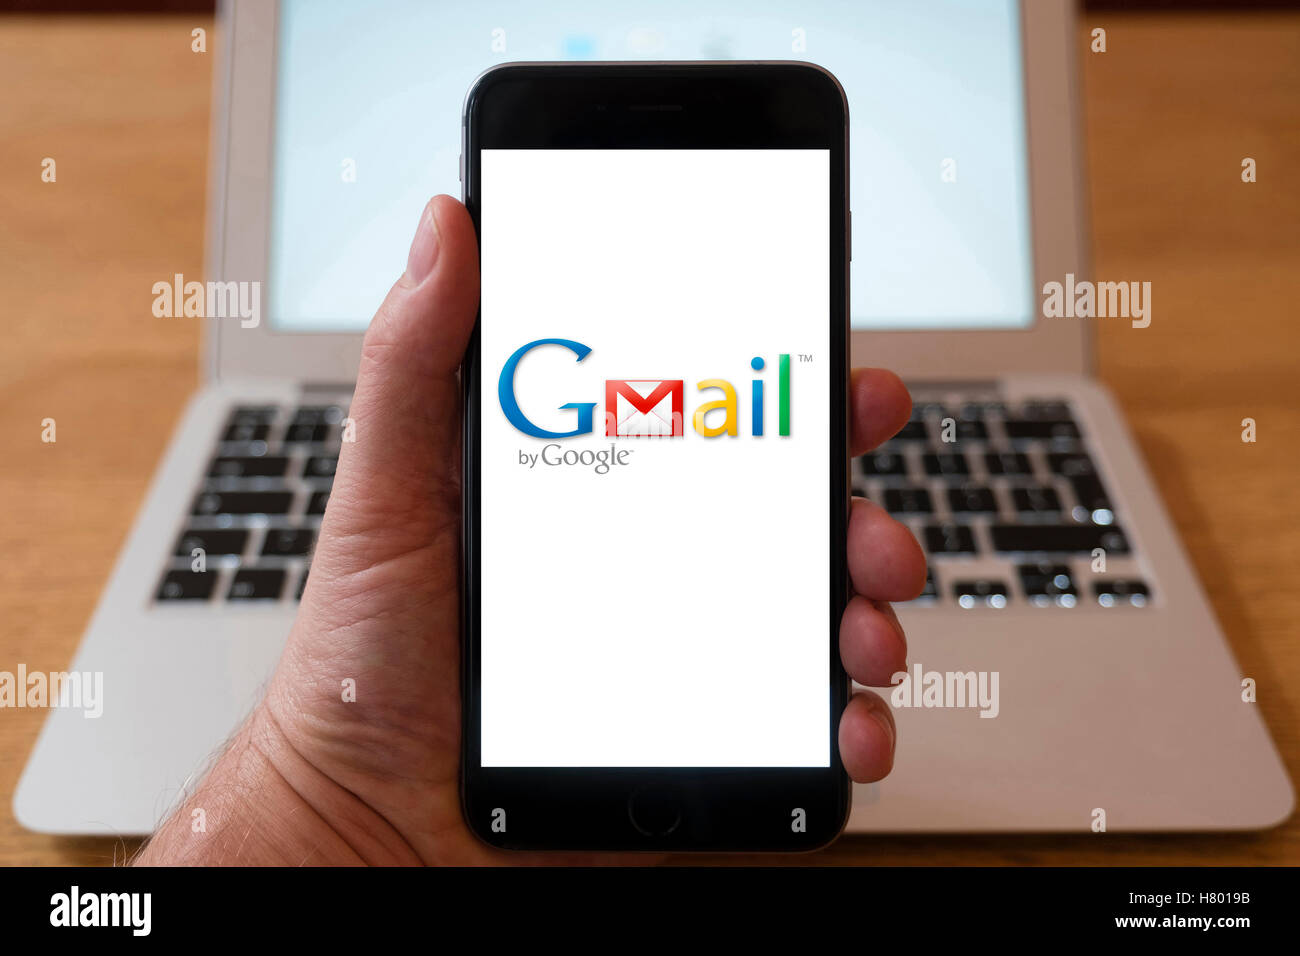 Using iPhone smartphone to display logo of Gmail , the Google email service - Stock Image